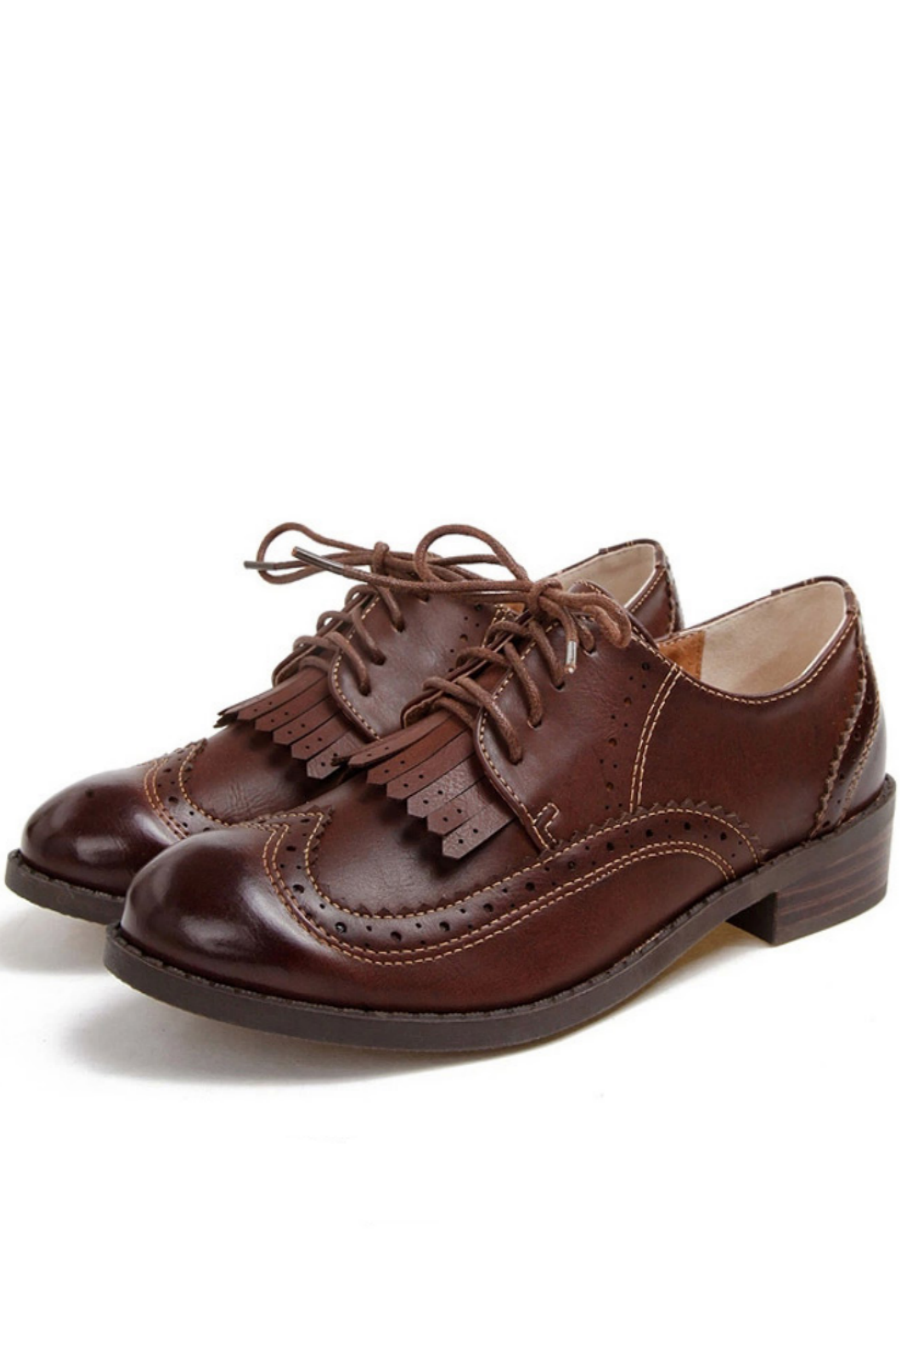 Brown Tassel Oxford Shoes